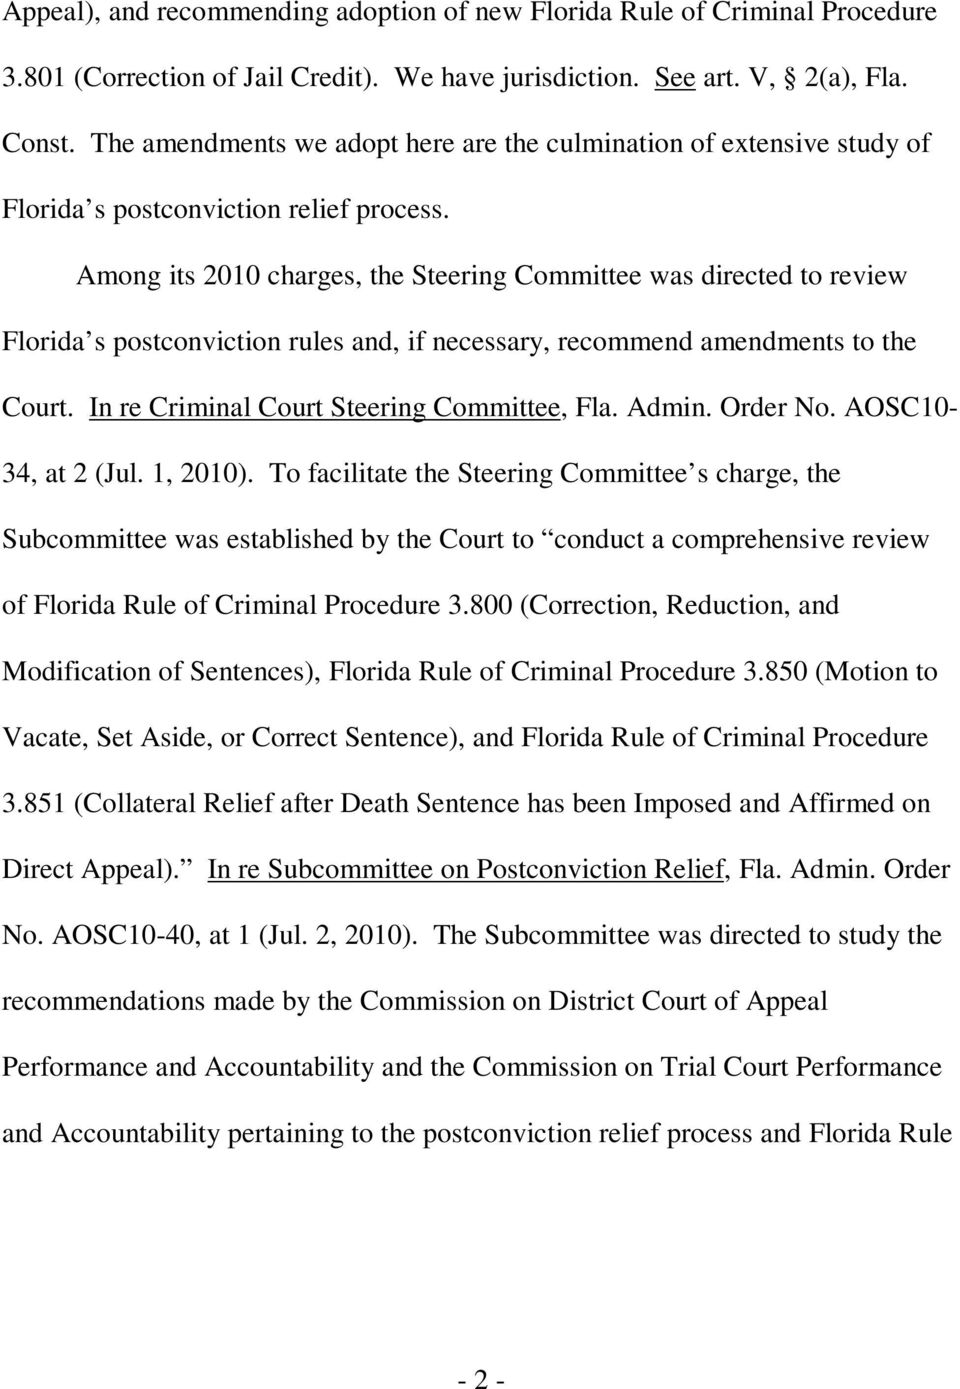 Among its 2010 charges, the Steering Committee was directed to review Florida s postconviction rules and, if necessary, recommend amendments to the Court. In re Criminal Court Steering Committee, Fla.